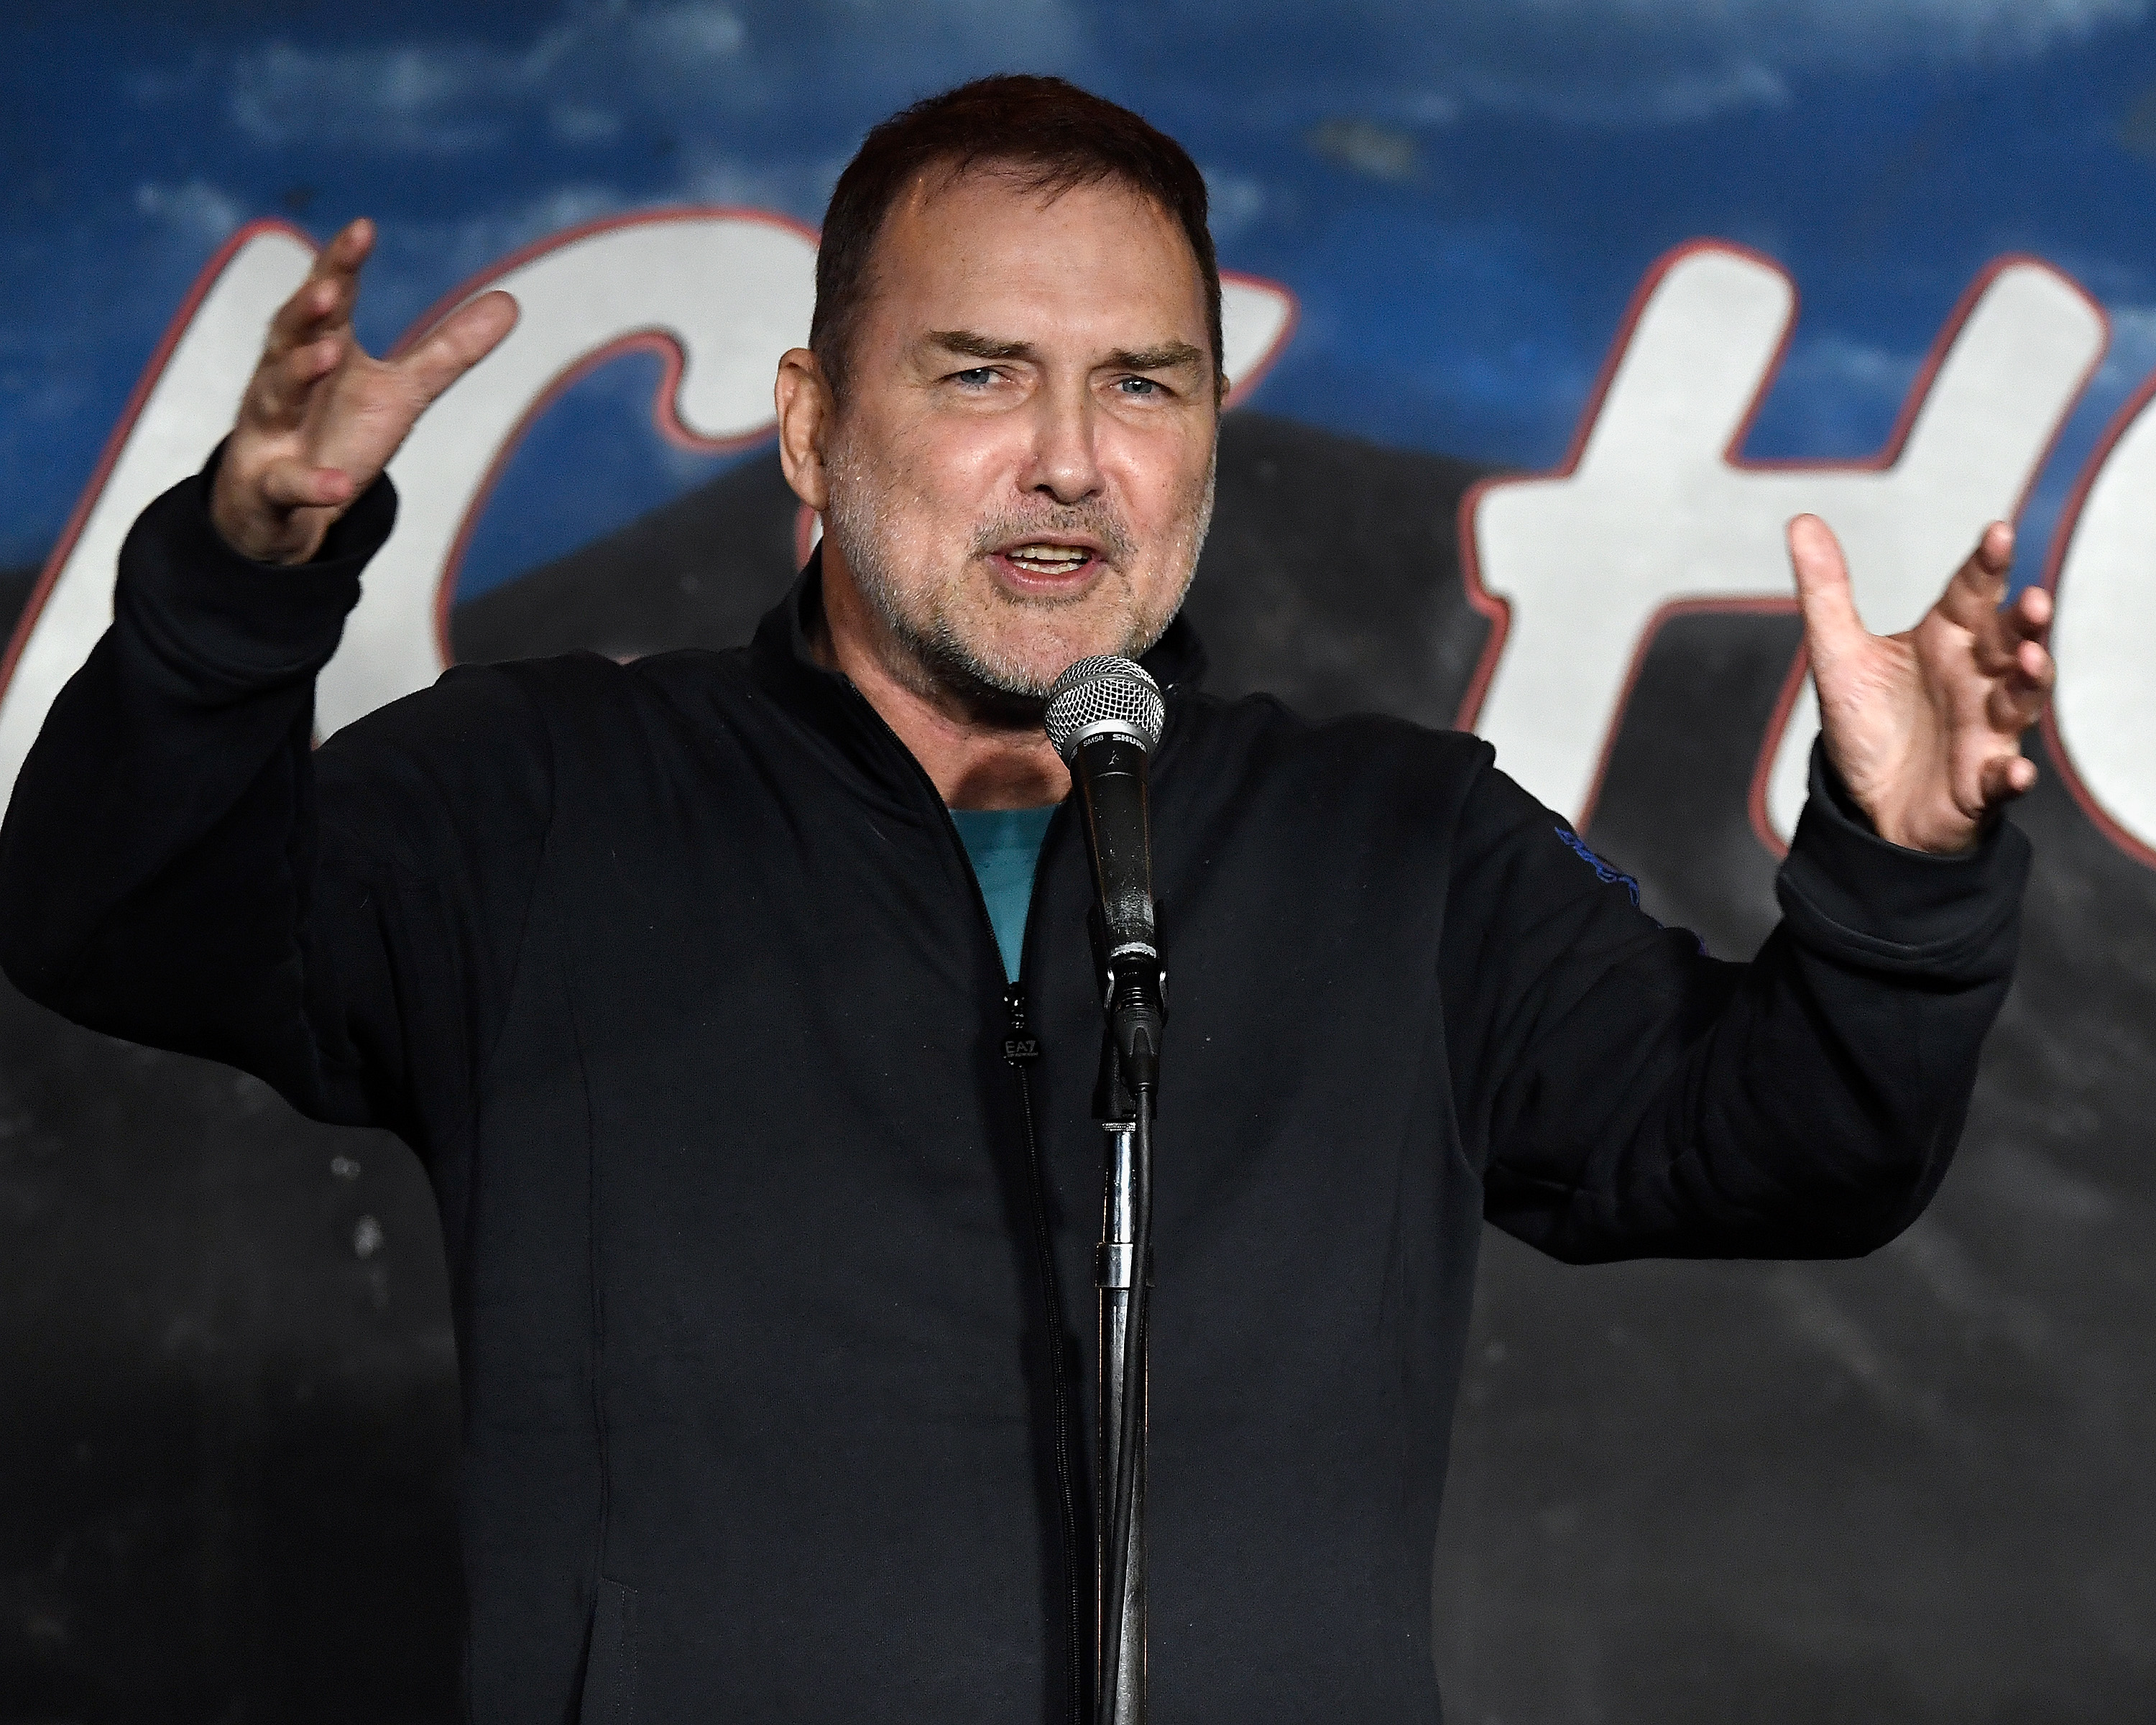 Norm Macdonald is cancelled as he defends Roseanne and Louis CK